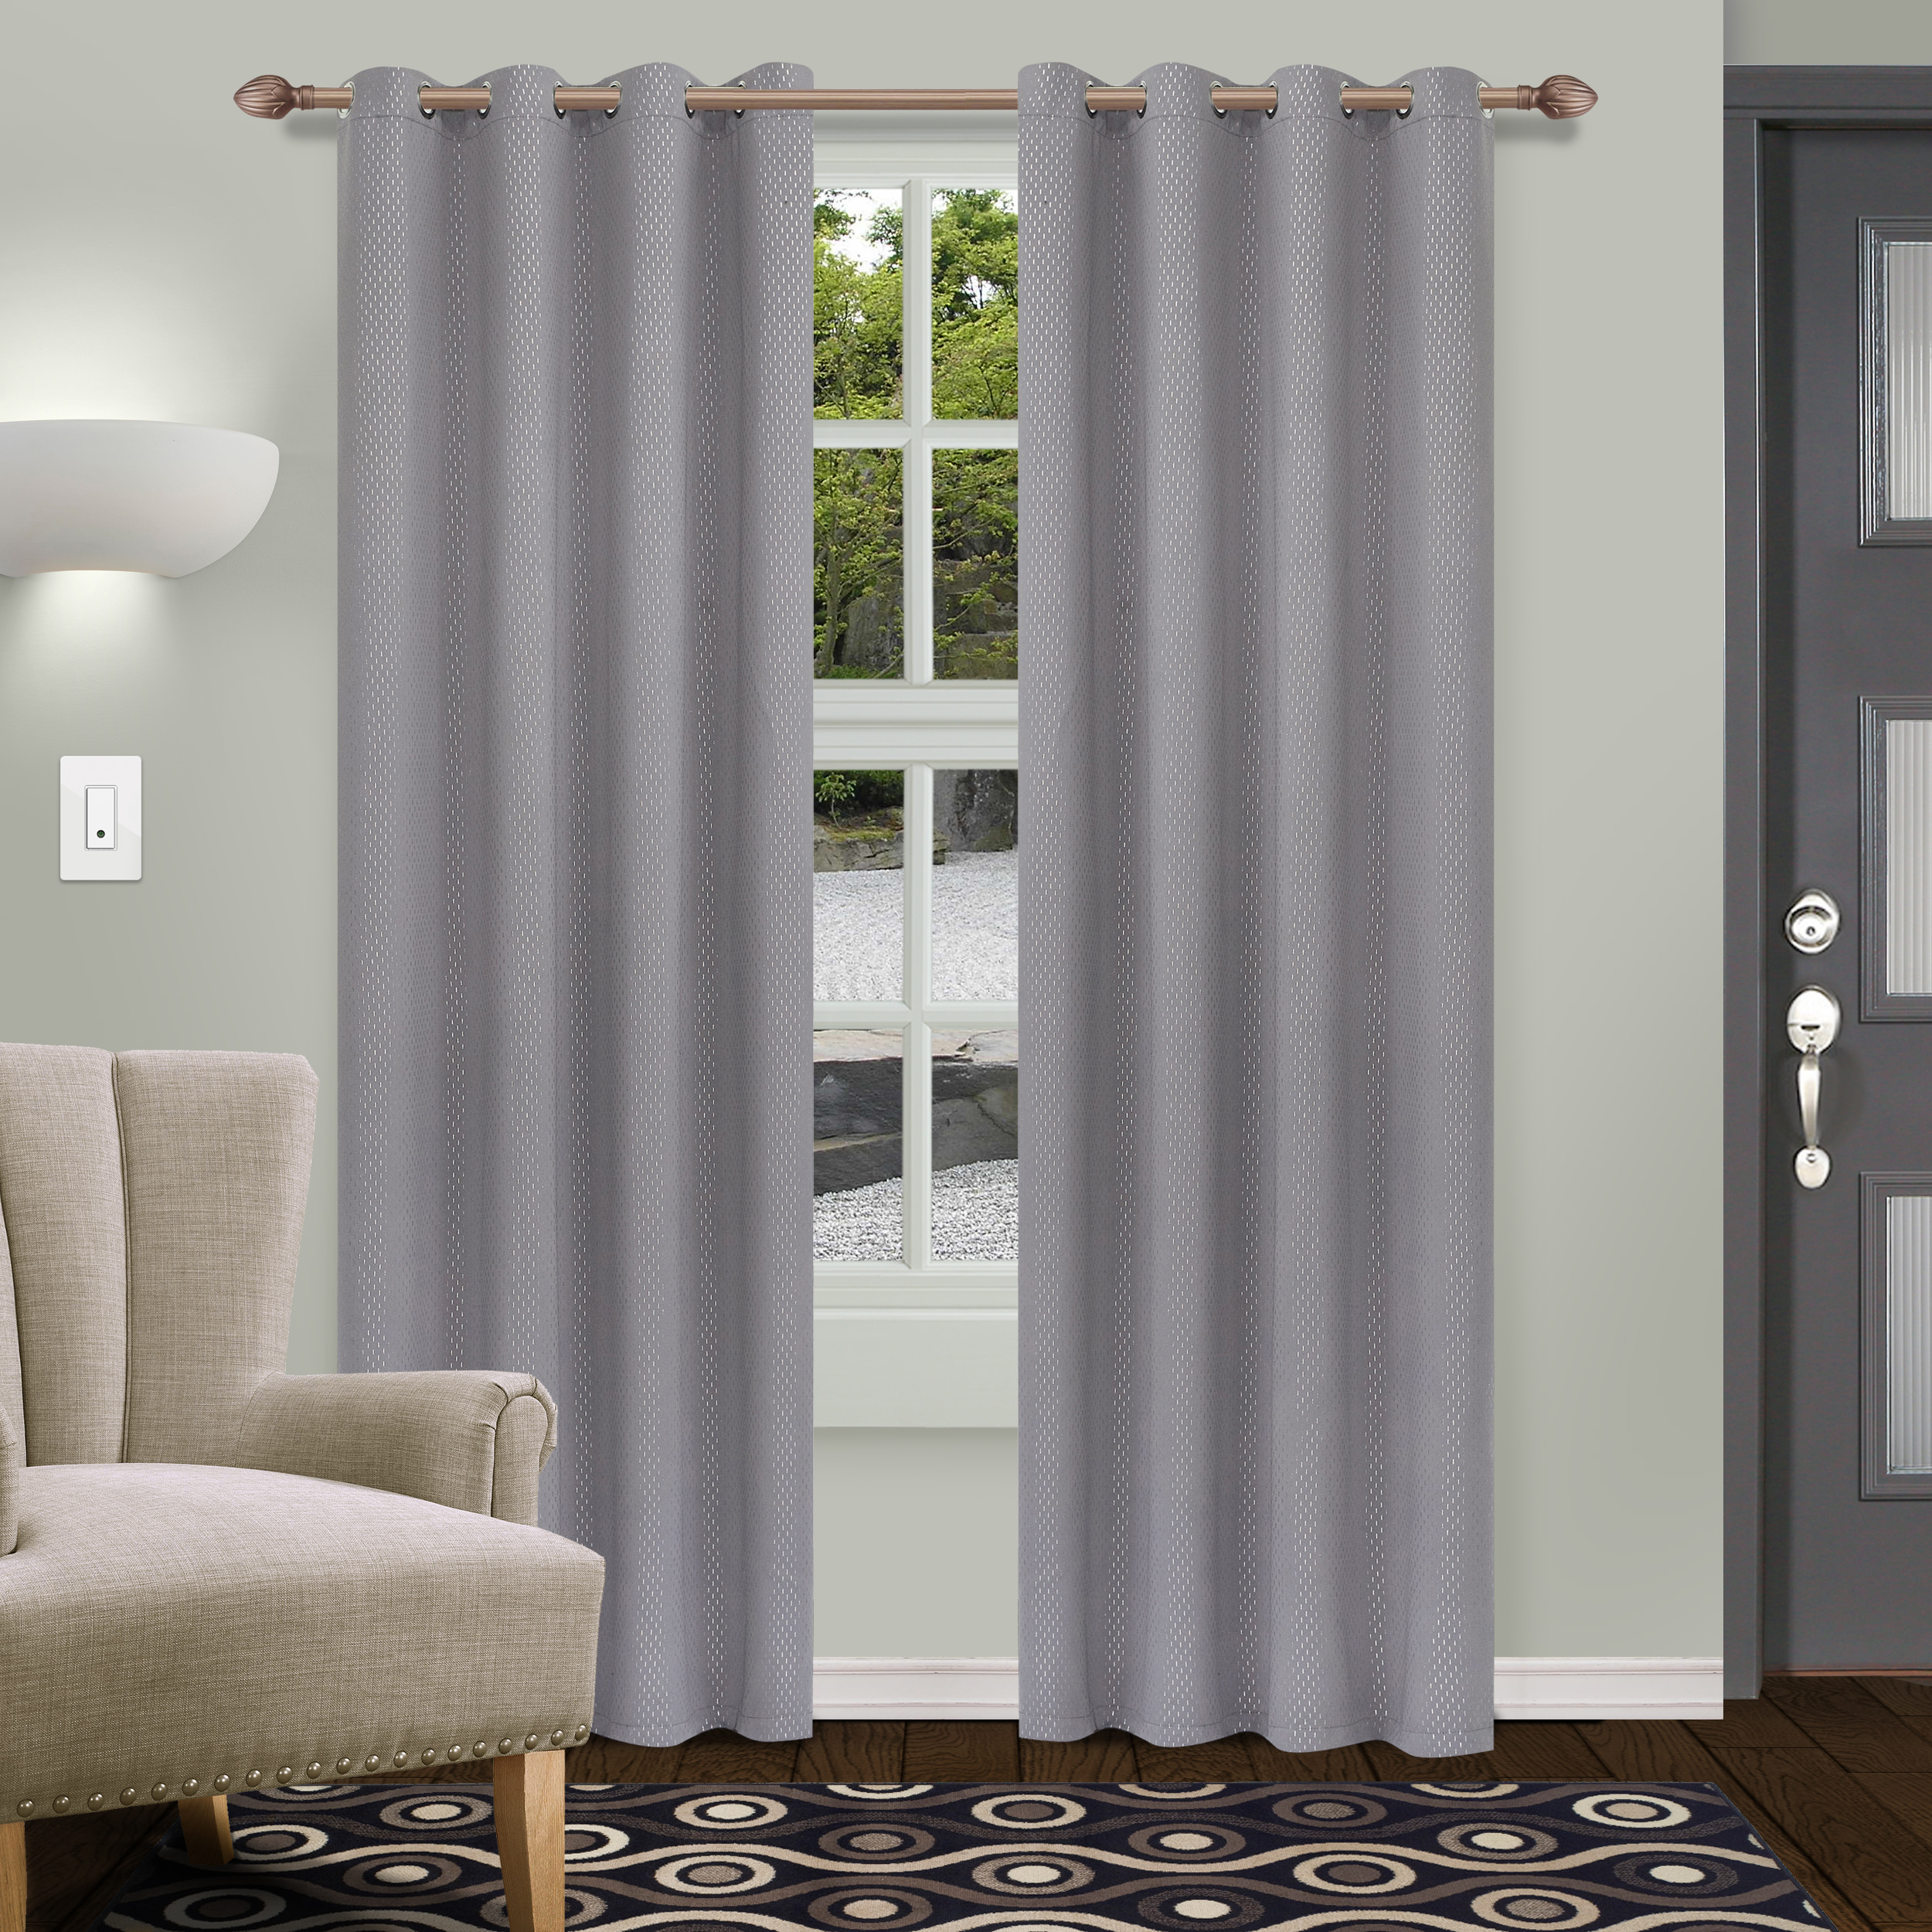 Superior Shimmer Textured Blackout Curtain Set Of 2, Insulated Panel With Grommet Top – Walmart Pertaining To Superior Solid Insulated Thermal Blackout Grommet Curtain Panel Pairs (View 17 of 30)